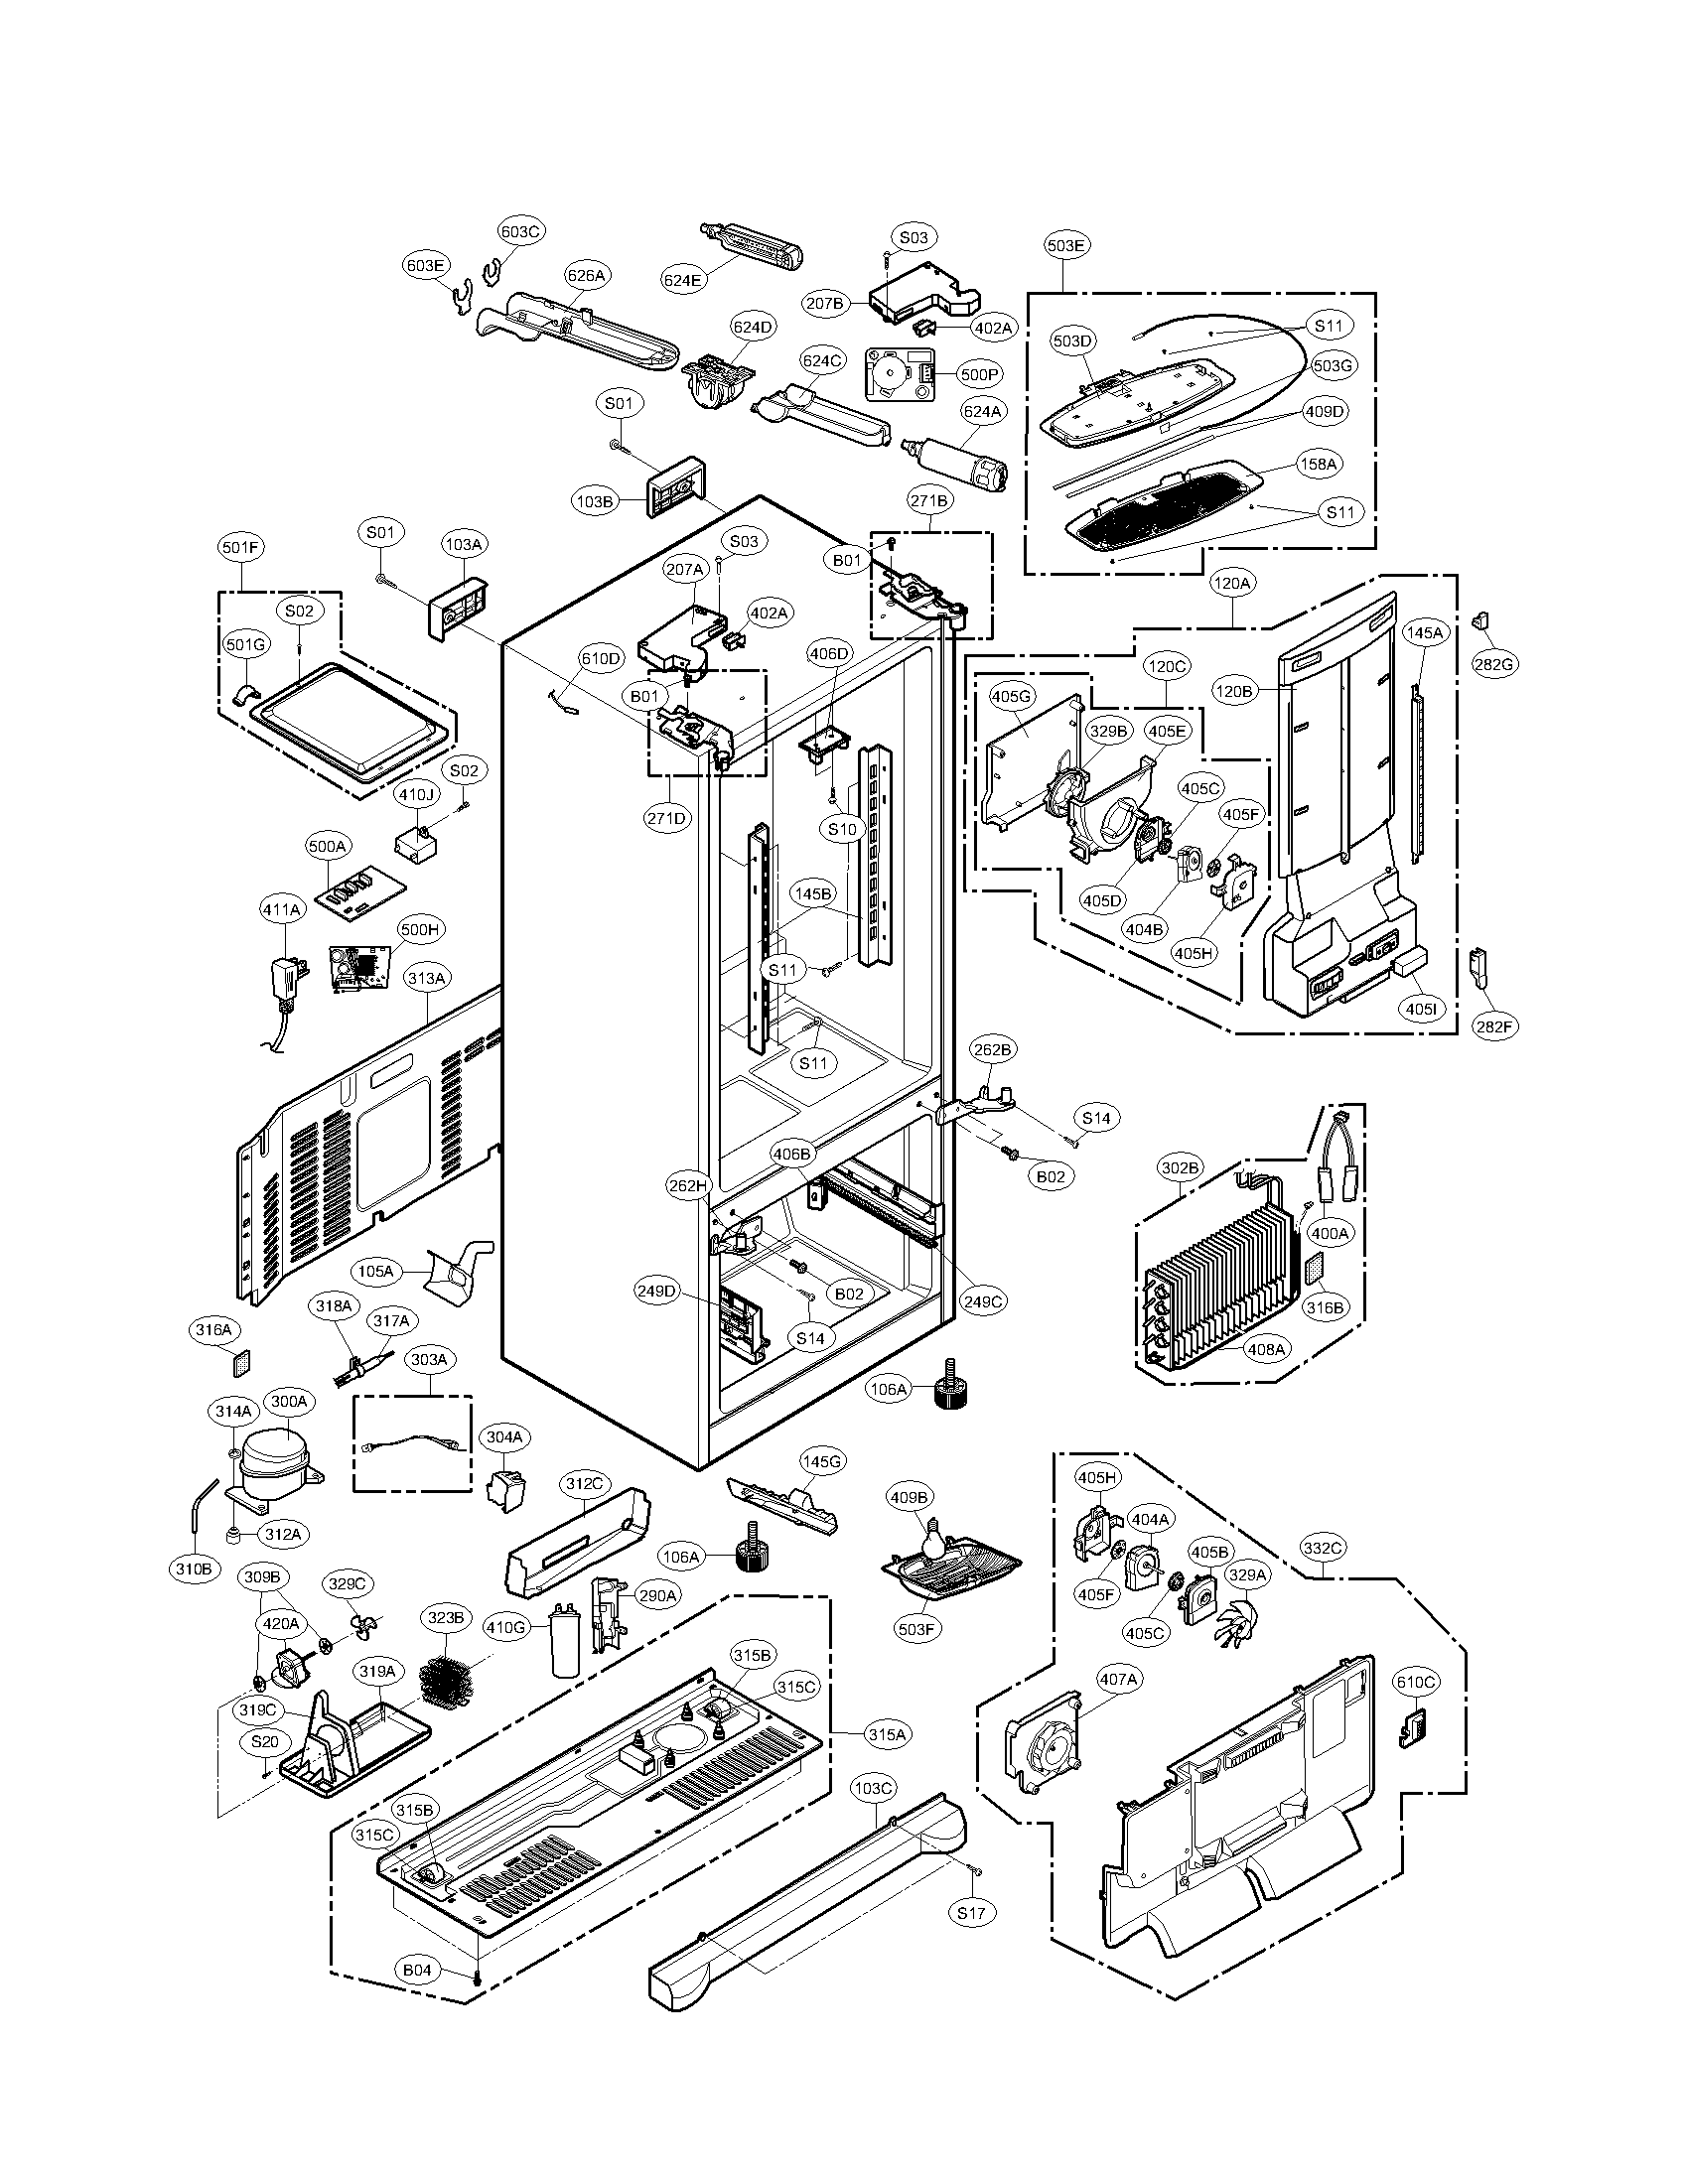 CASE PARTS Diagram & Parts List for Model 79571056010